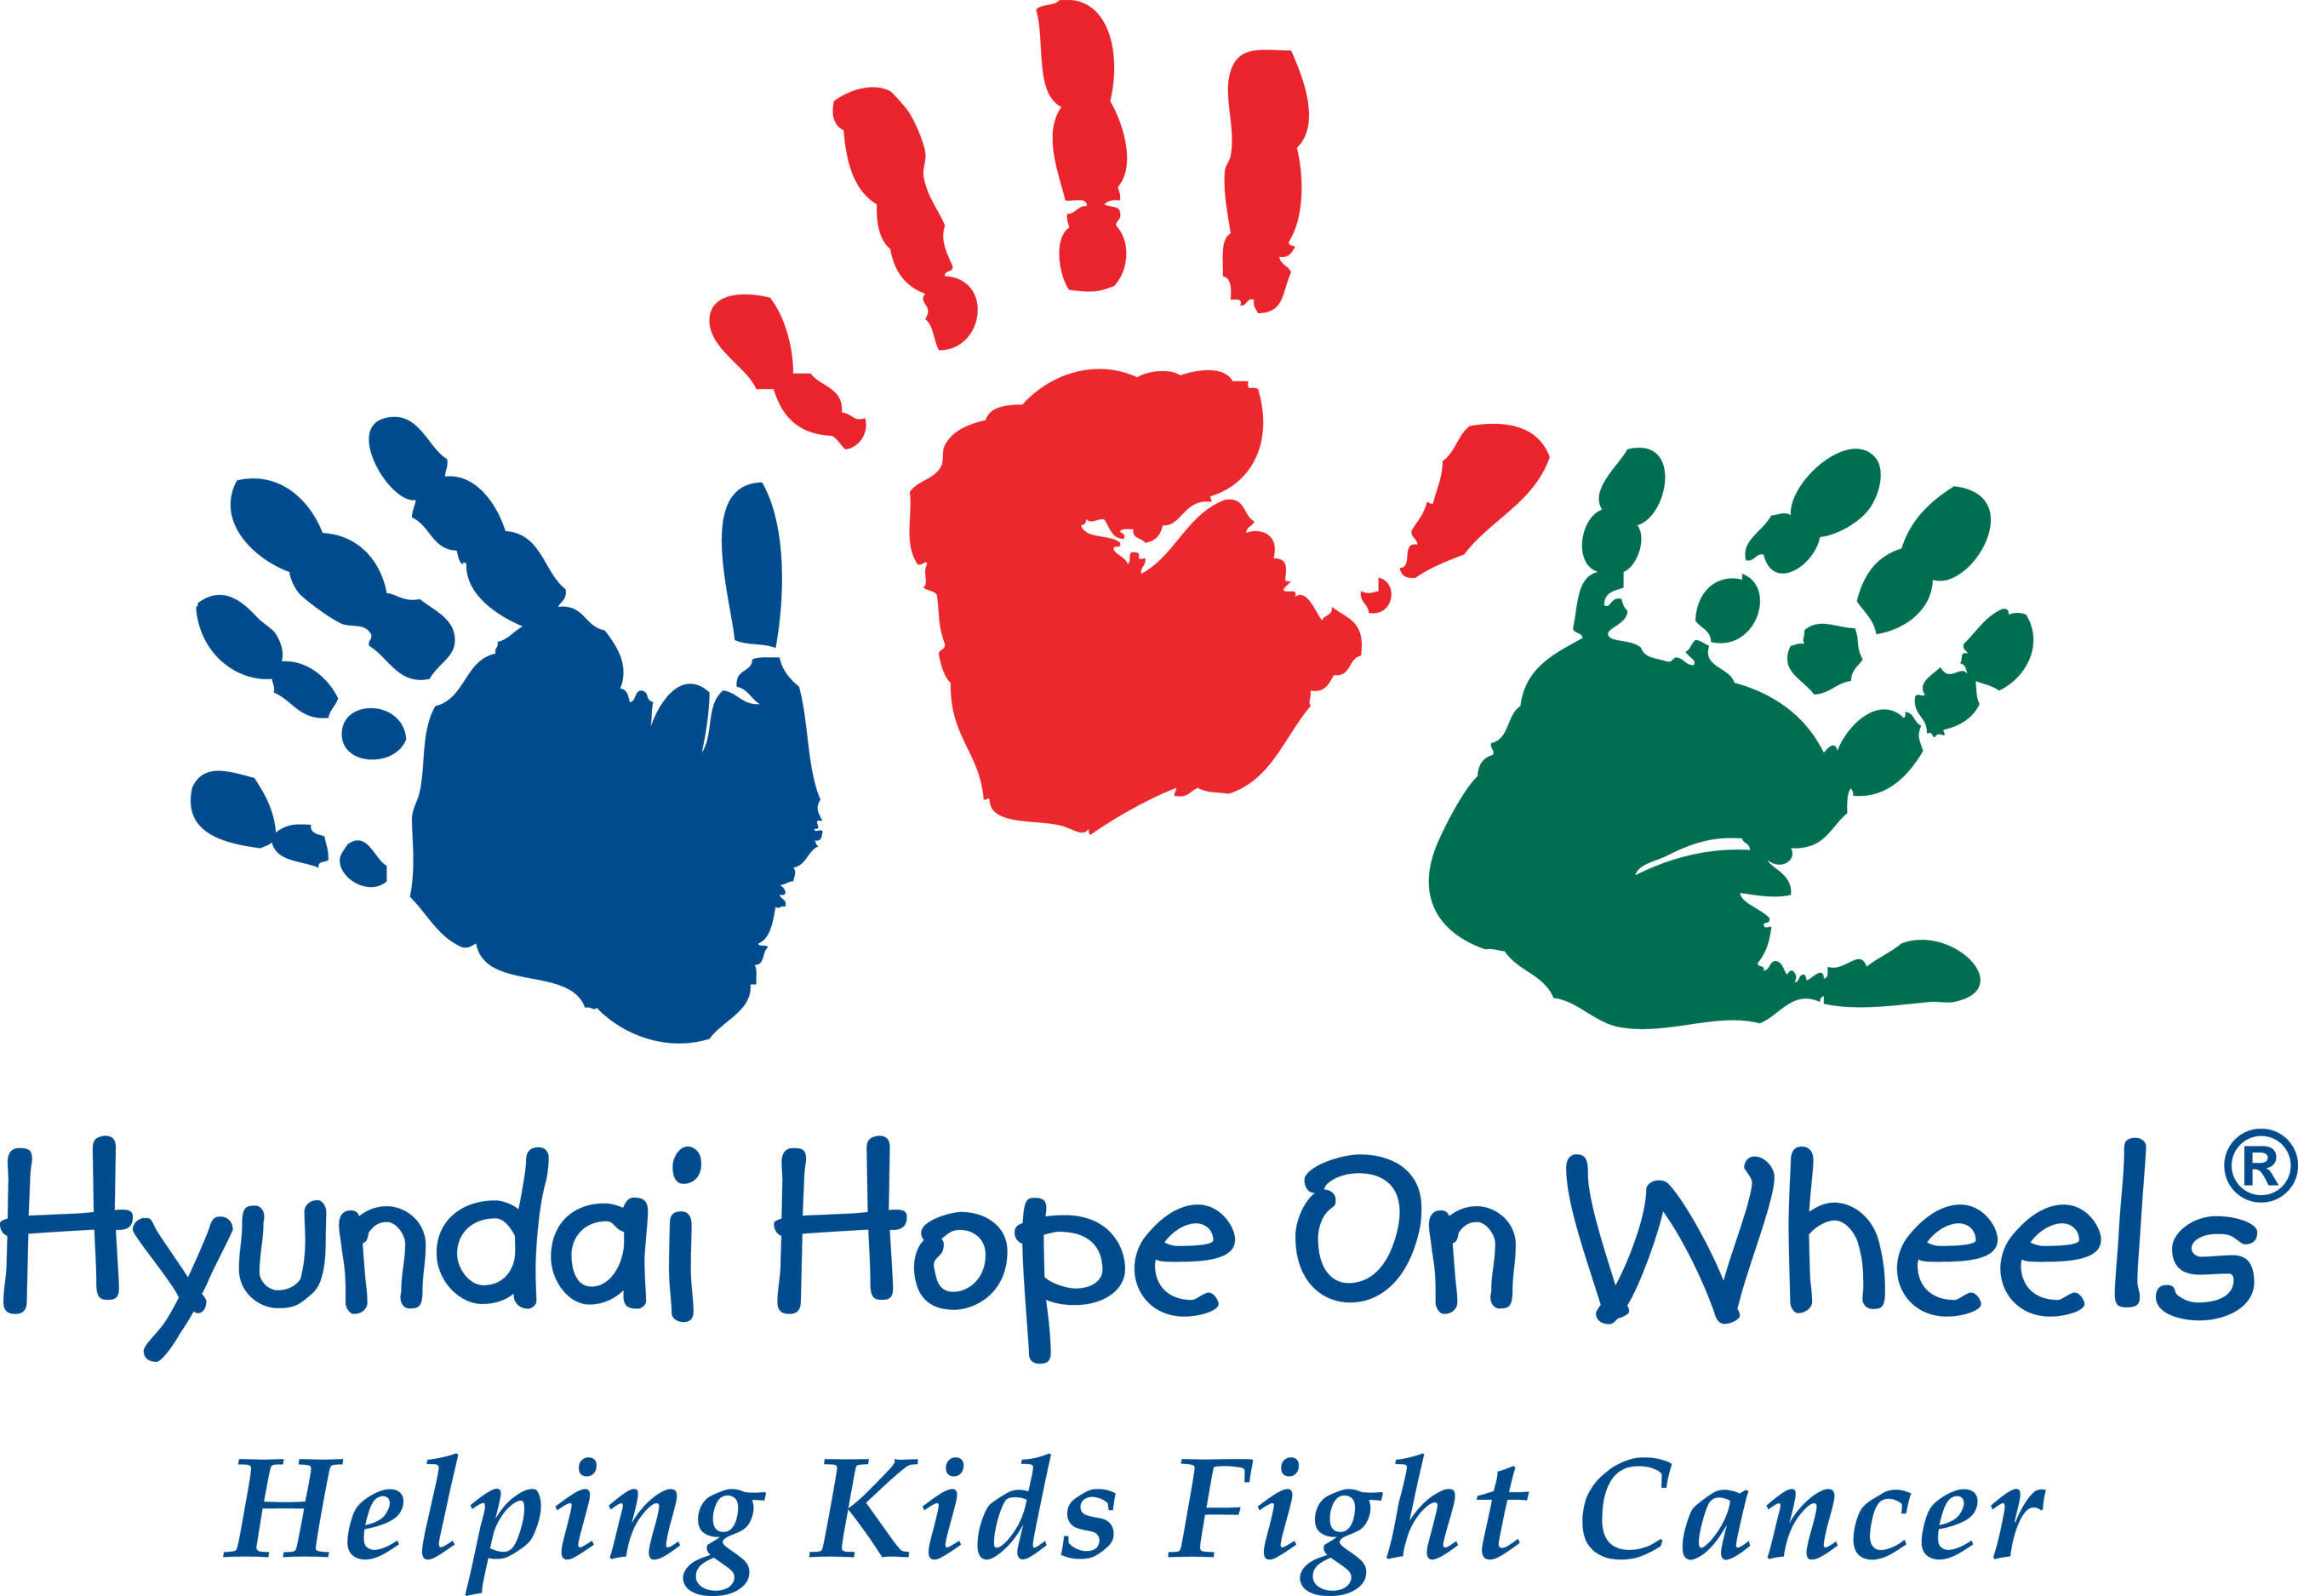 Hyundai Hope On Wheels Has Named Two-Time Grammy Winner Melanie Fiona As A 2015 Ambassador Of Hope For Pediatric Cancer